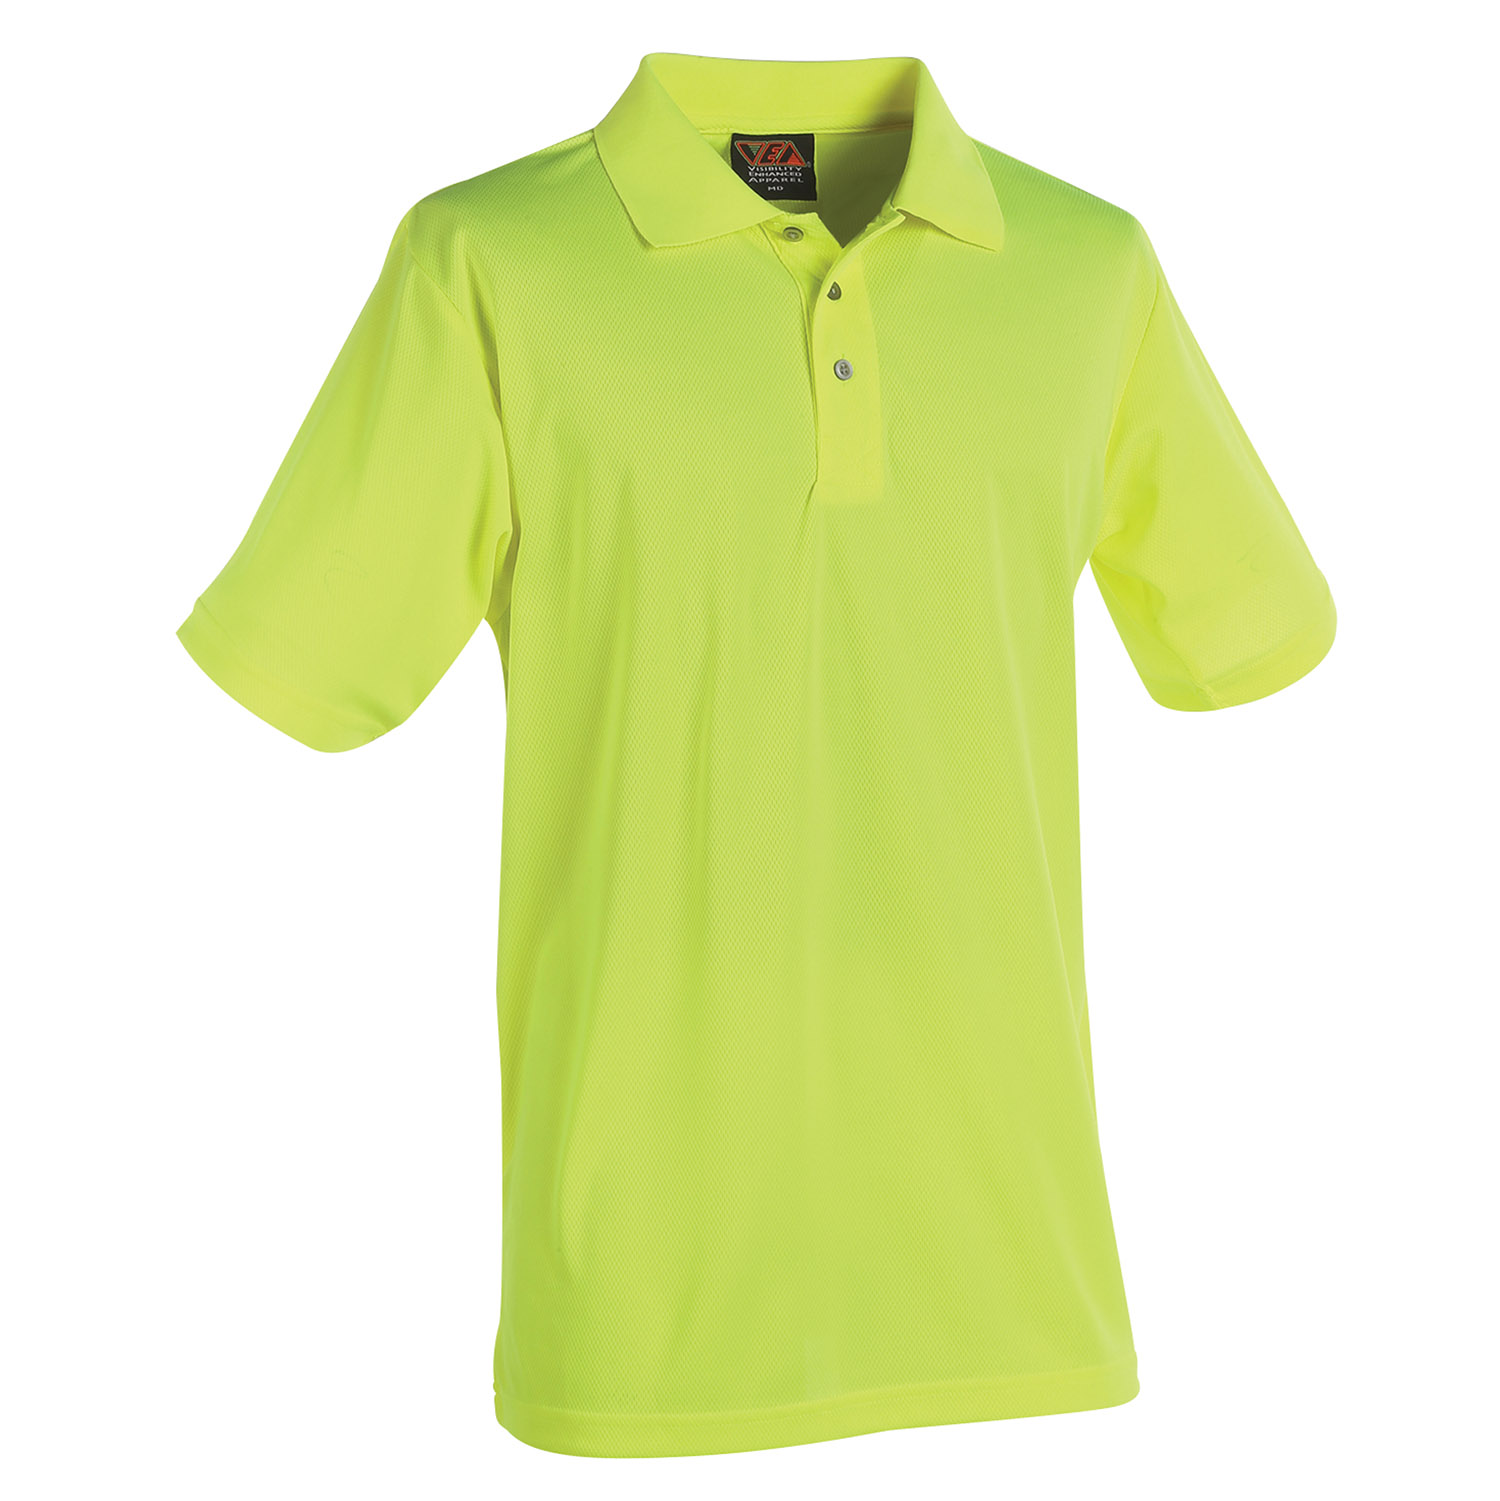 Reflective Apparel Factory Visibility Knit Performance Polo